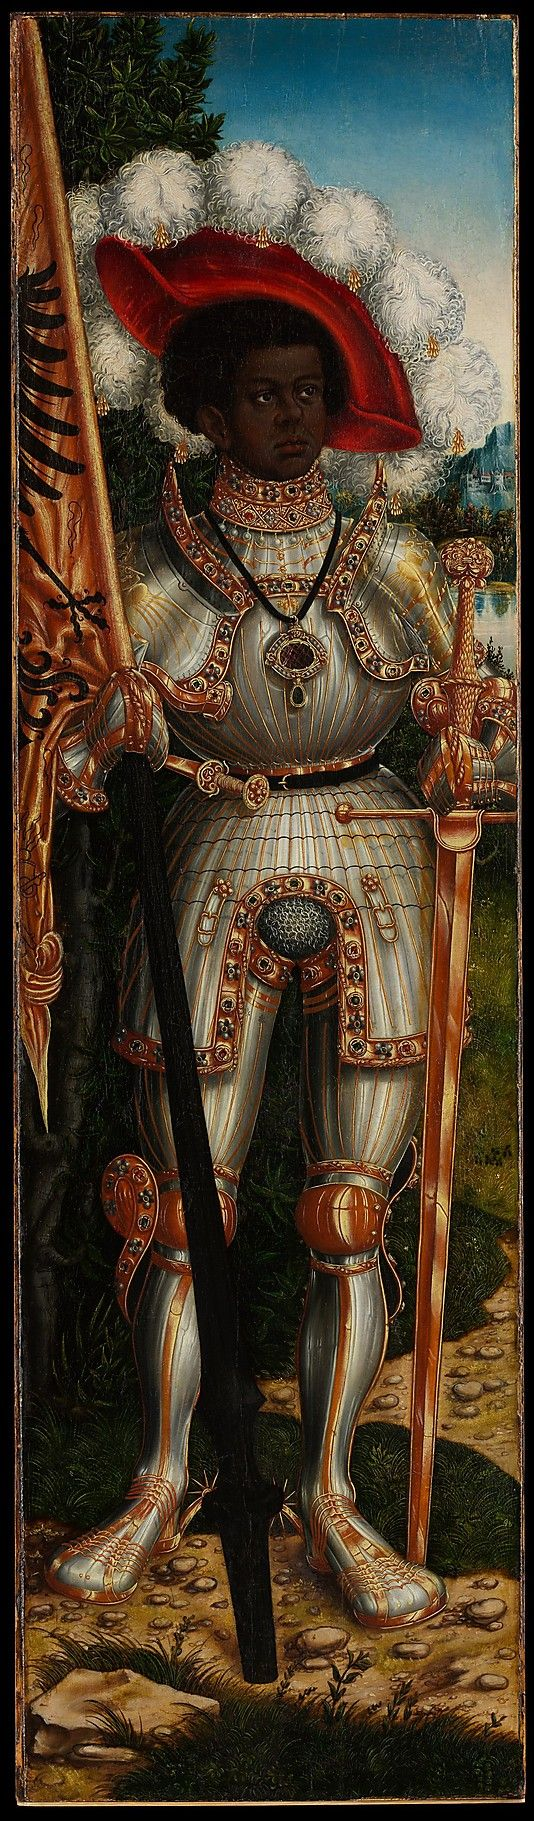 Saint Maurice Lucas Cranach the Elder and Workshop   (German, Kronach 1472–1553 Weimar) Date:ca. 1522–25 Medium:Oil on wood Dimensions:54 x 151/2 in. (137.2 x 39.4cm) Originally the left wing of an altarpiece, this panel represents Saint Maurice, the Roman legion commander who was martyred for refusing to slaughter the Christians of Gaul in the late third century A.D. Painted about 1522–25 Click here for more.